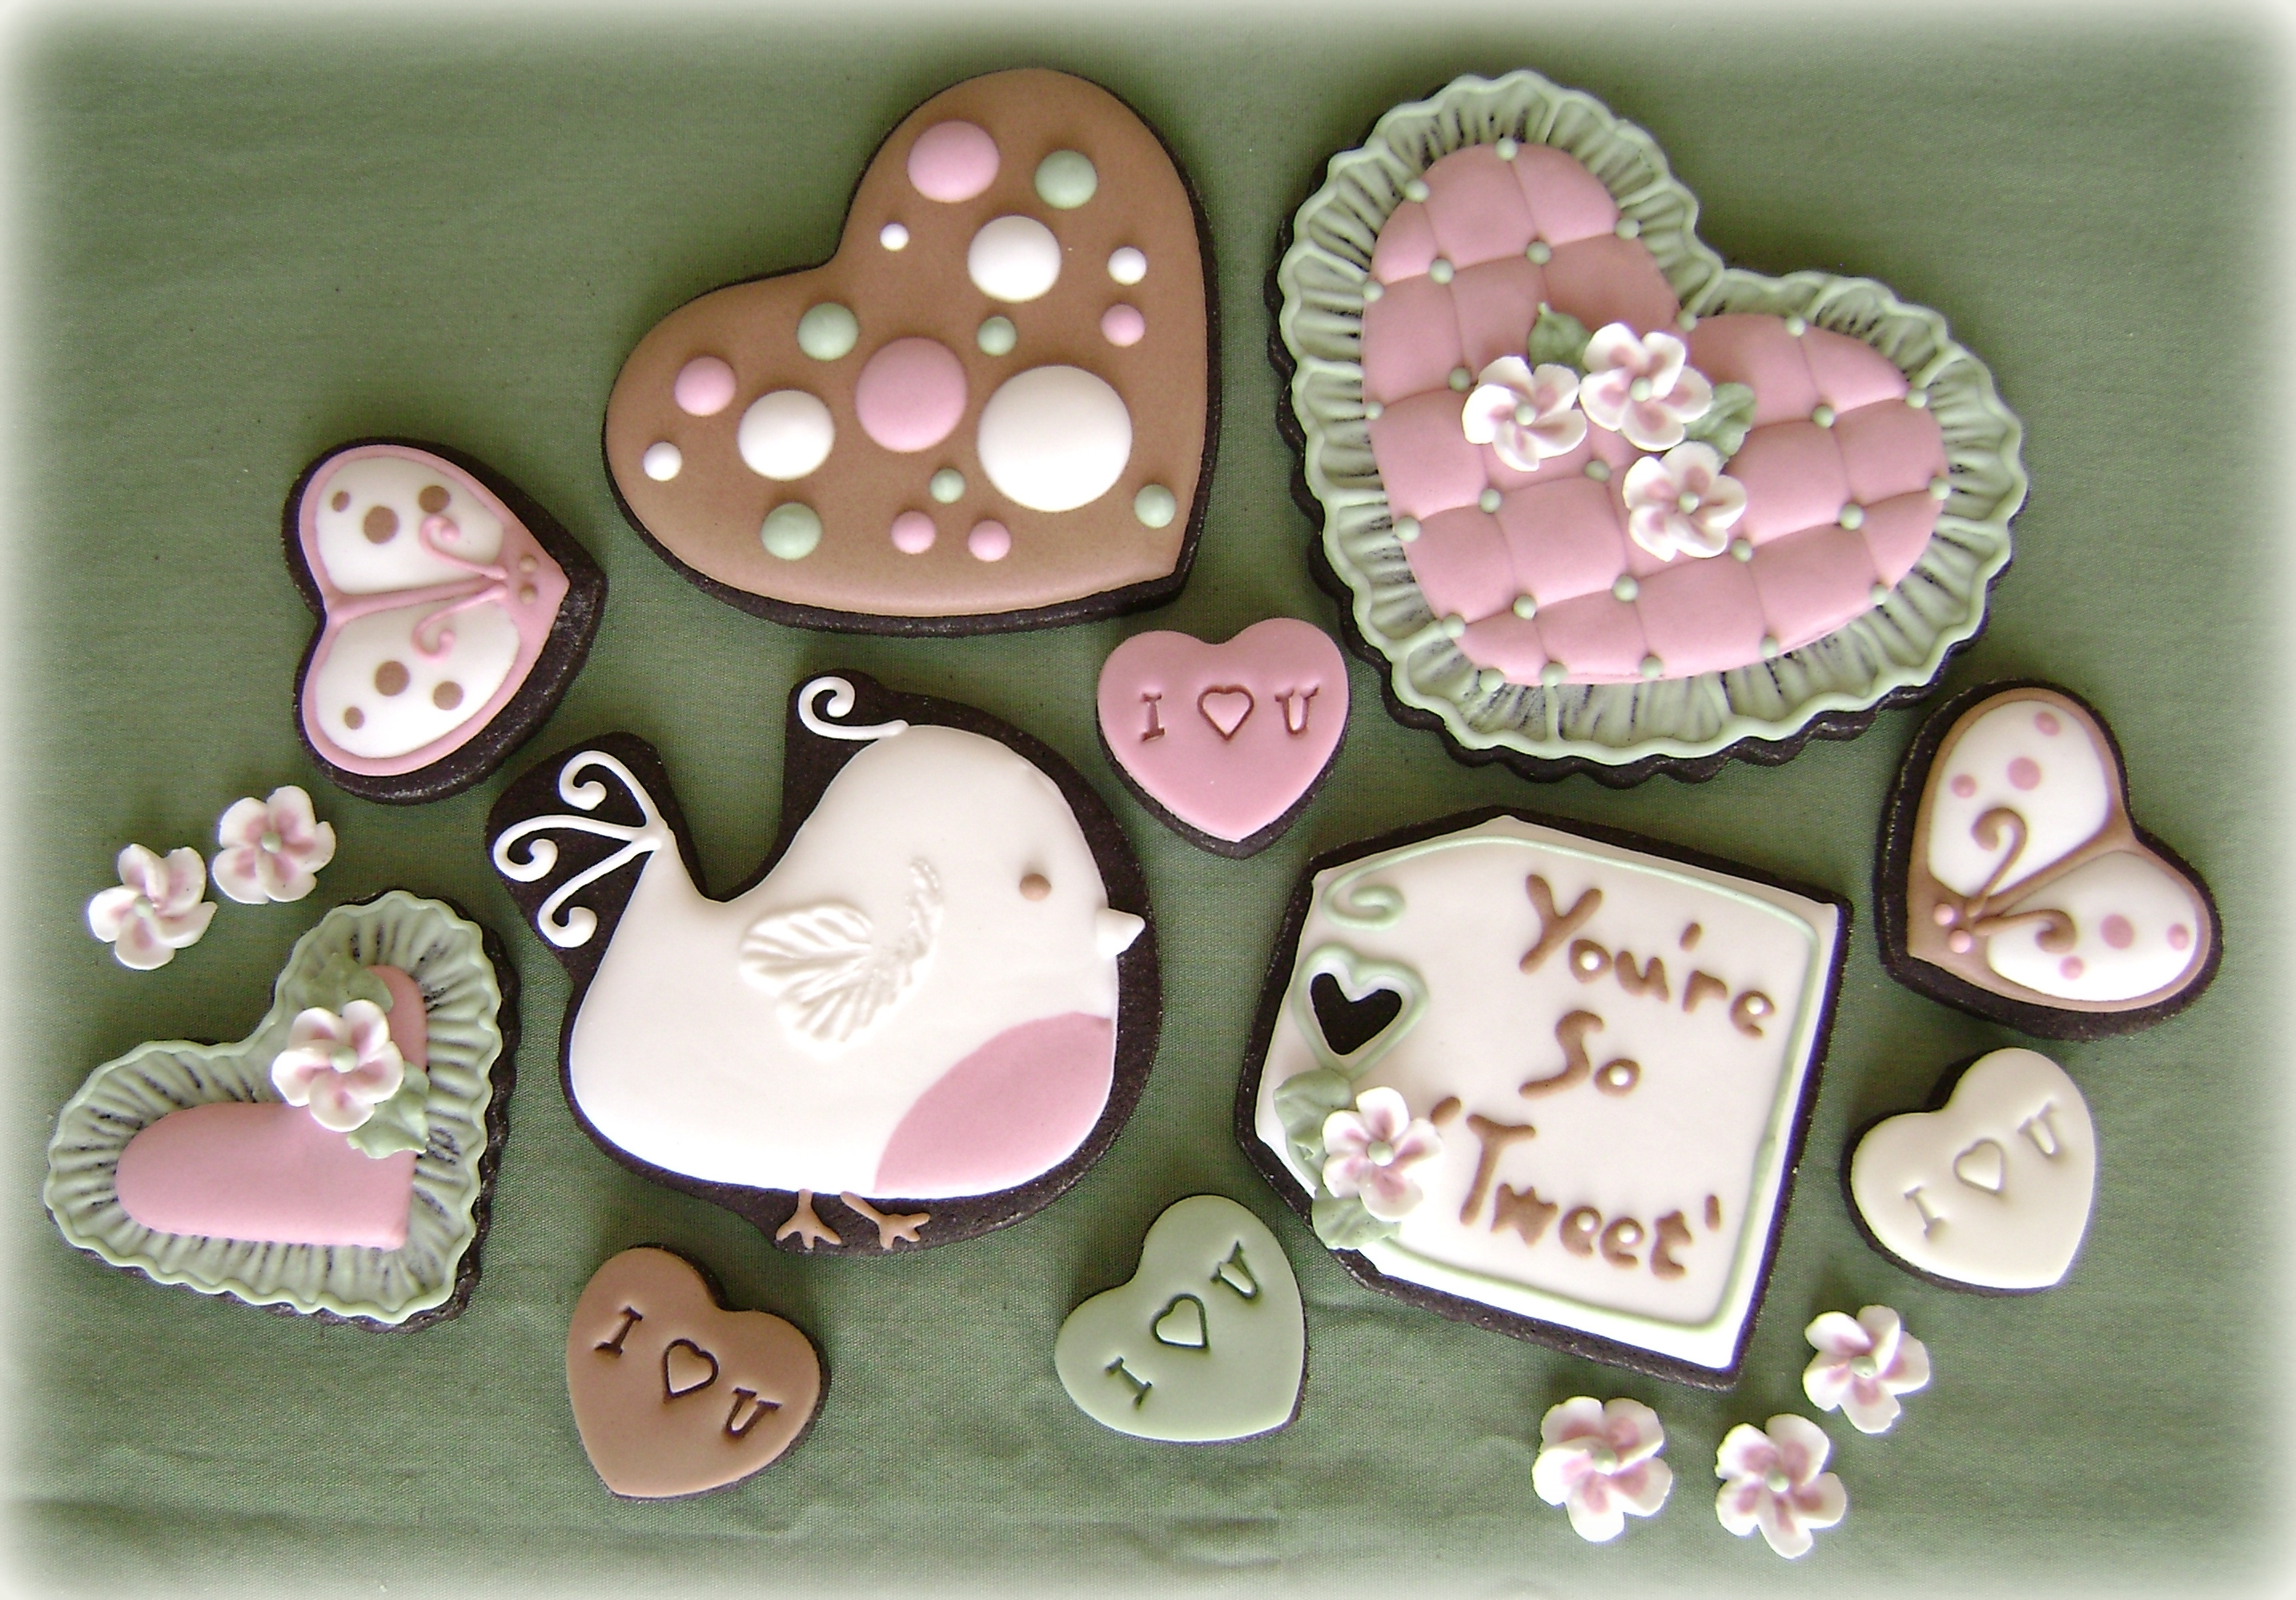 Valentine's Puns And Hearts - CakeCentral.com